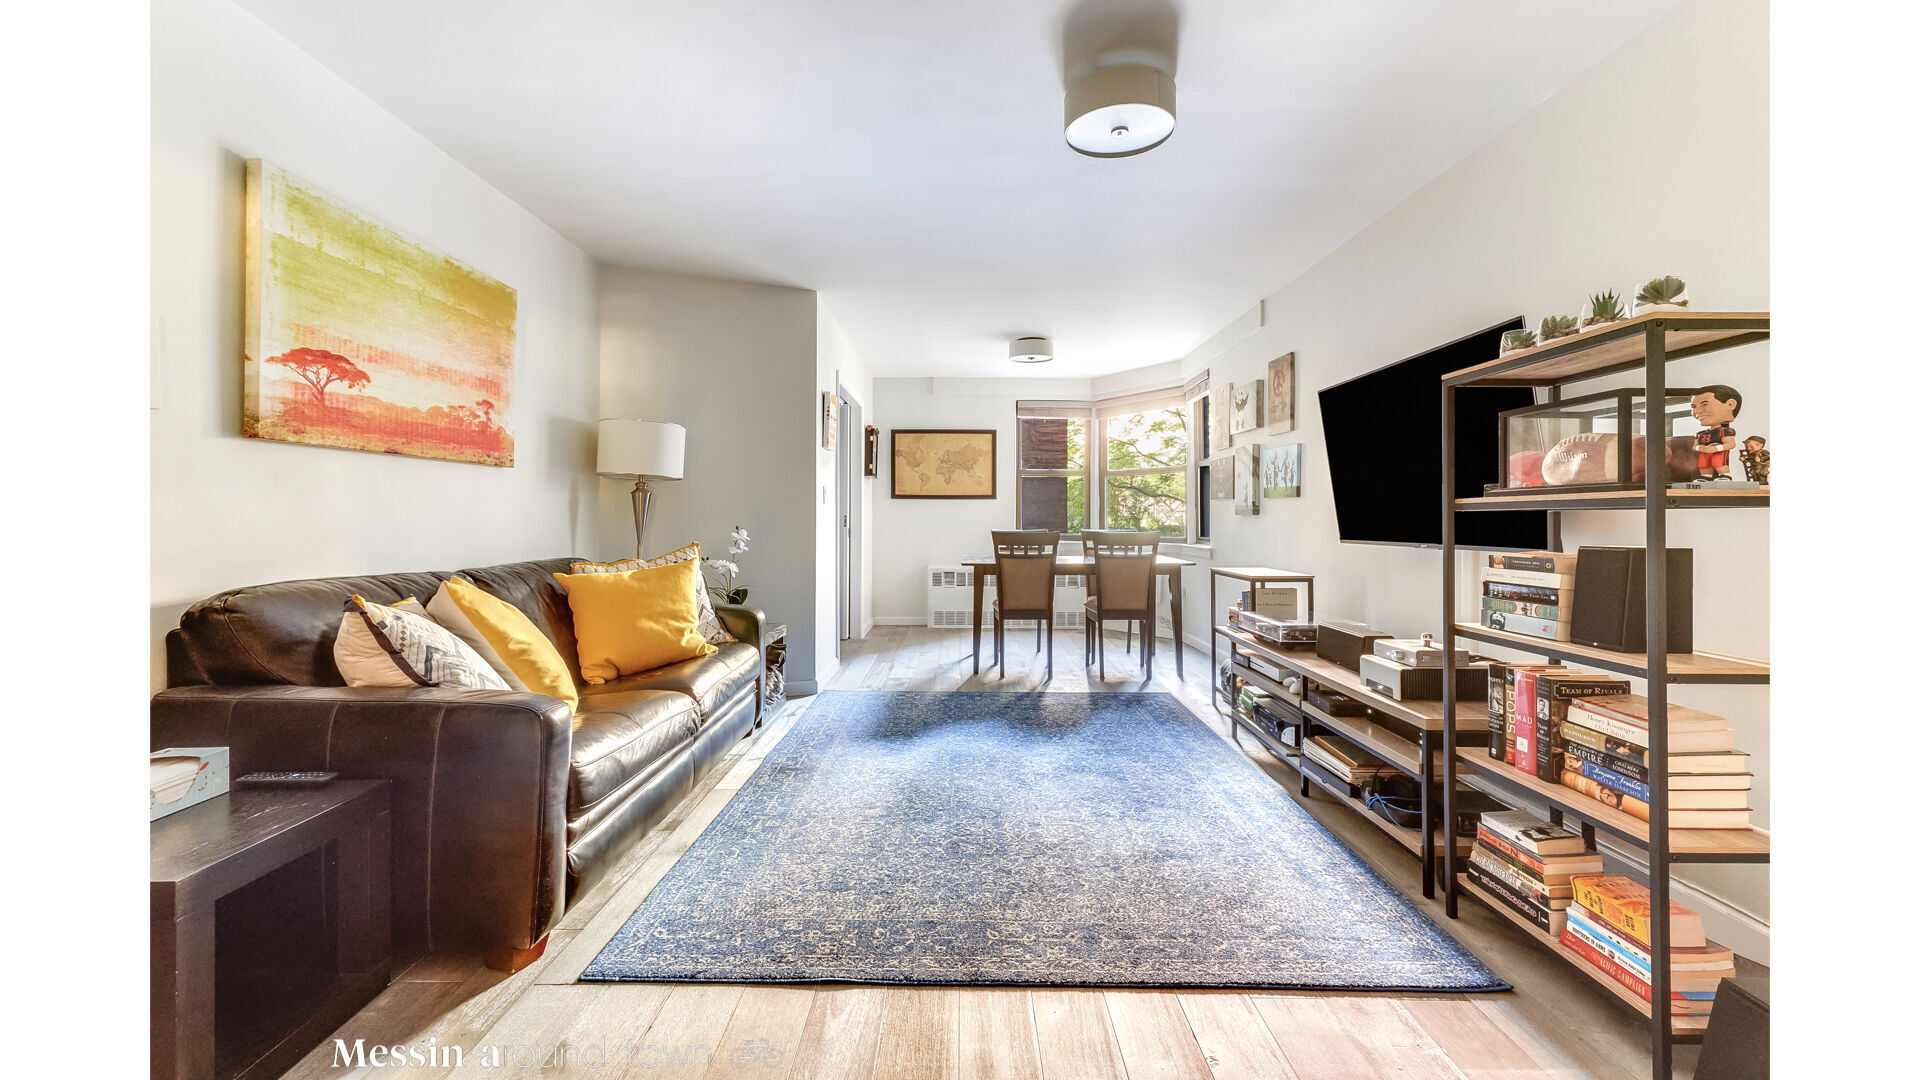 Apartment for sale at 145 East 15th Street, Apt 4-N